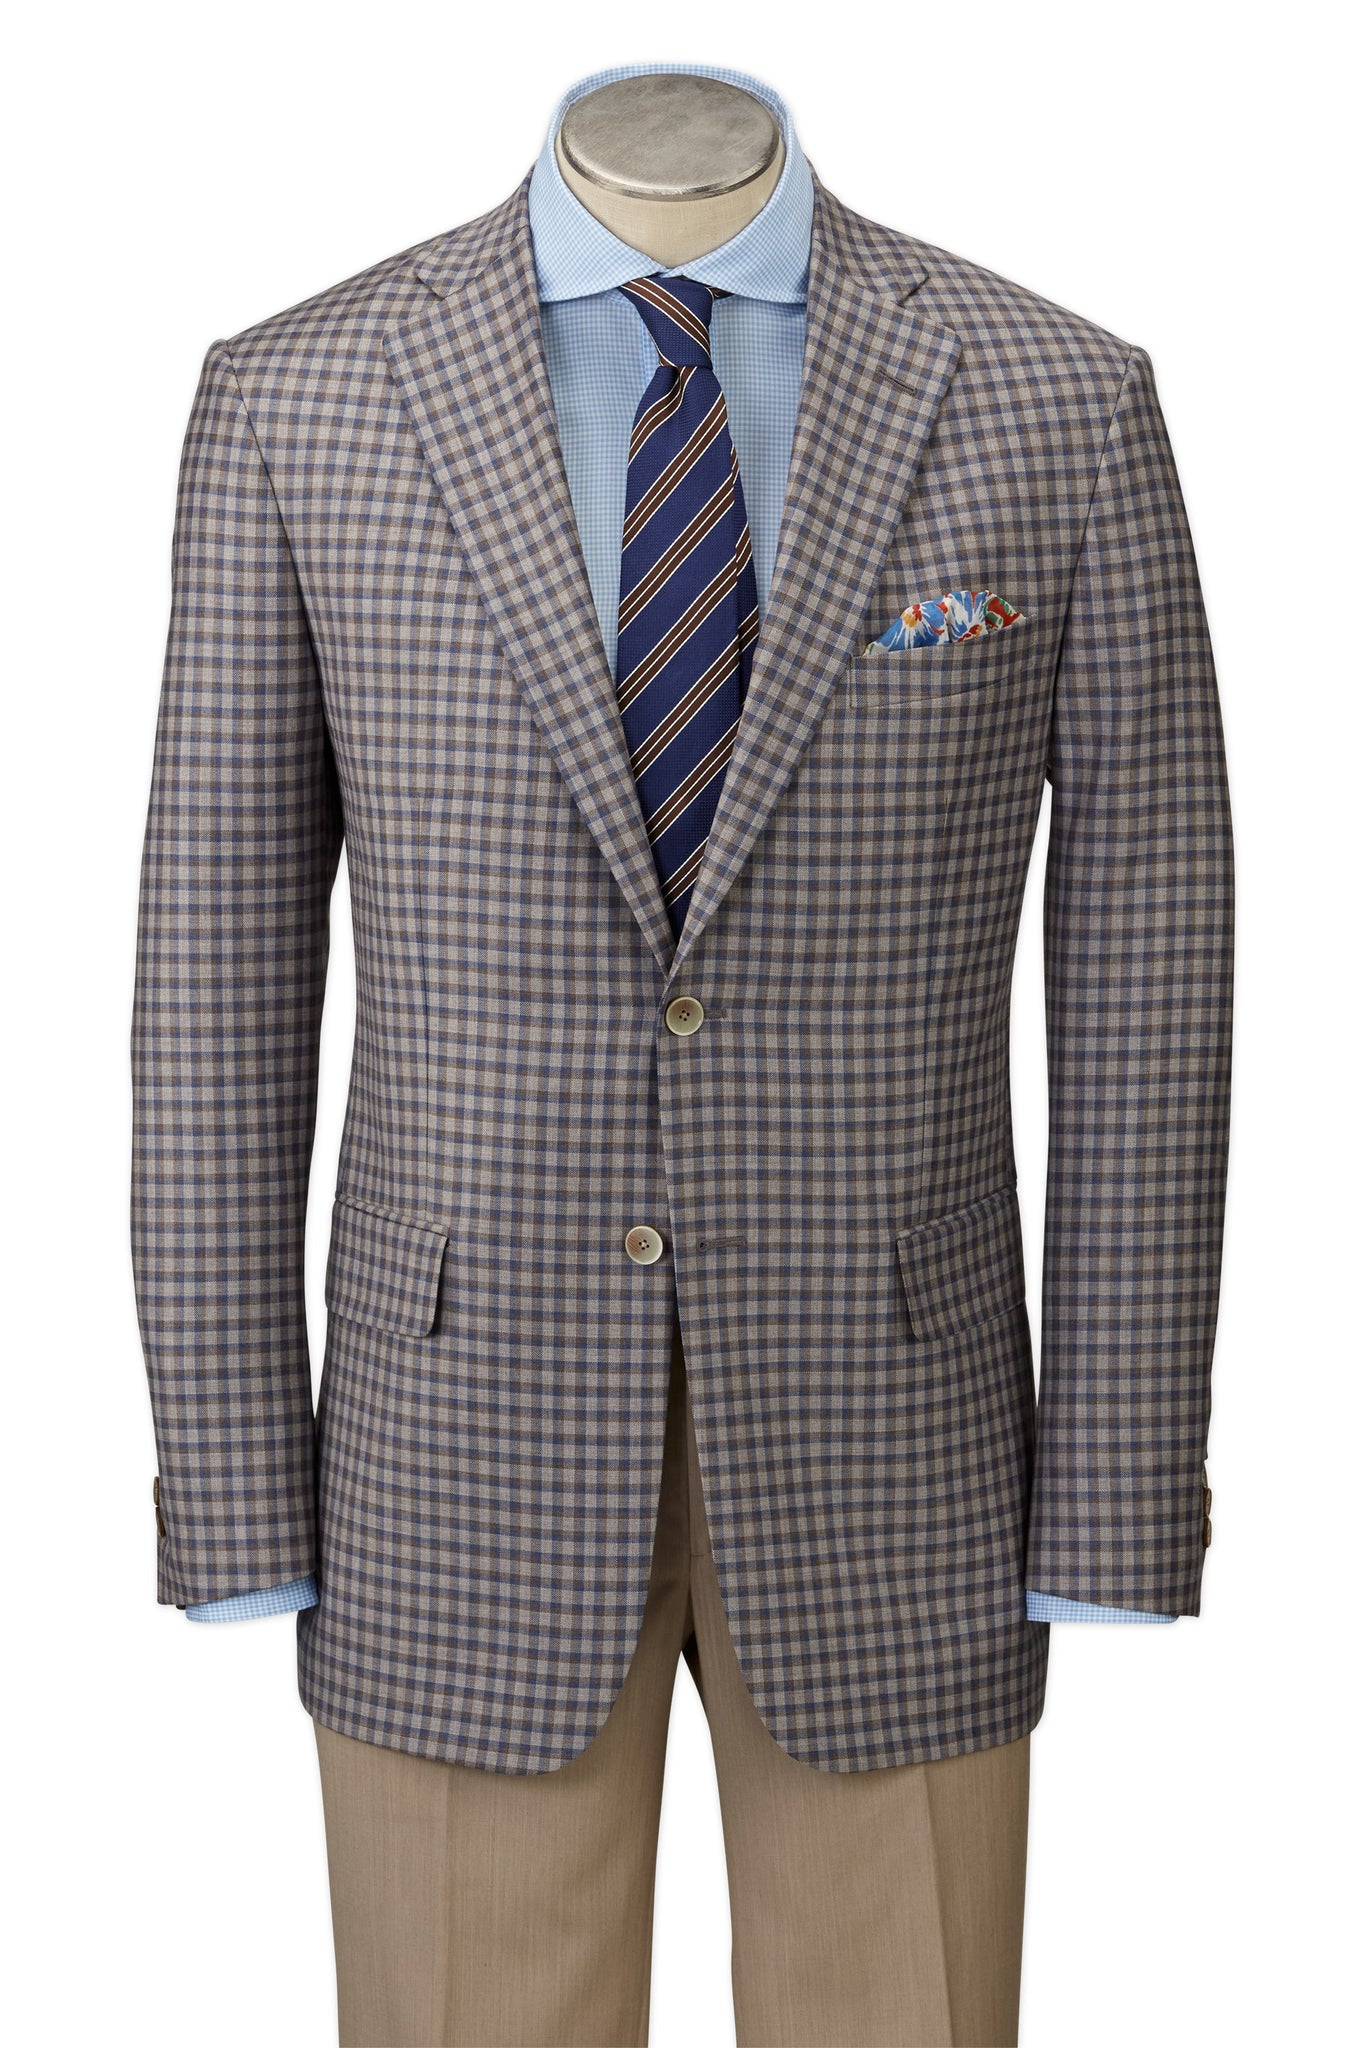 Modern Fit Brown & Blue Check Sport Coat -  Hardwick.com